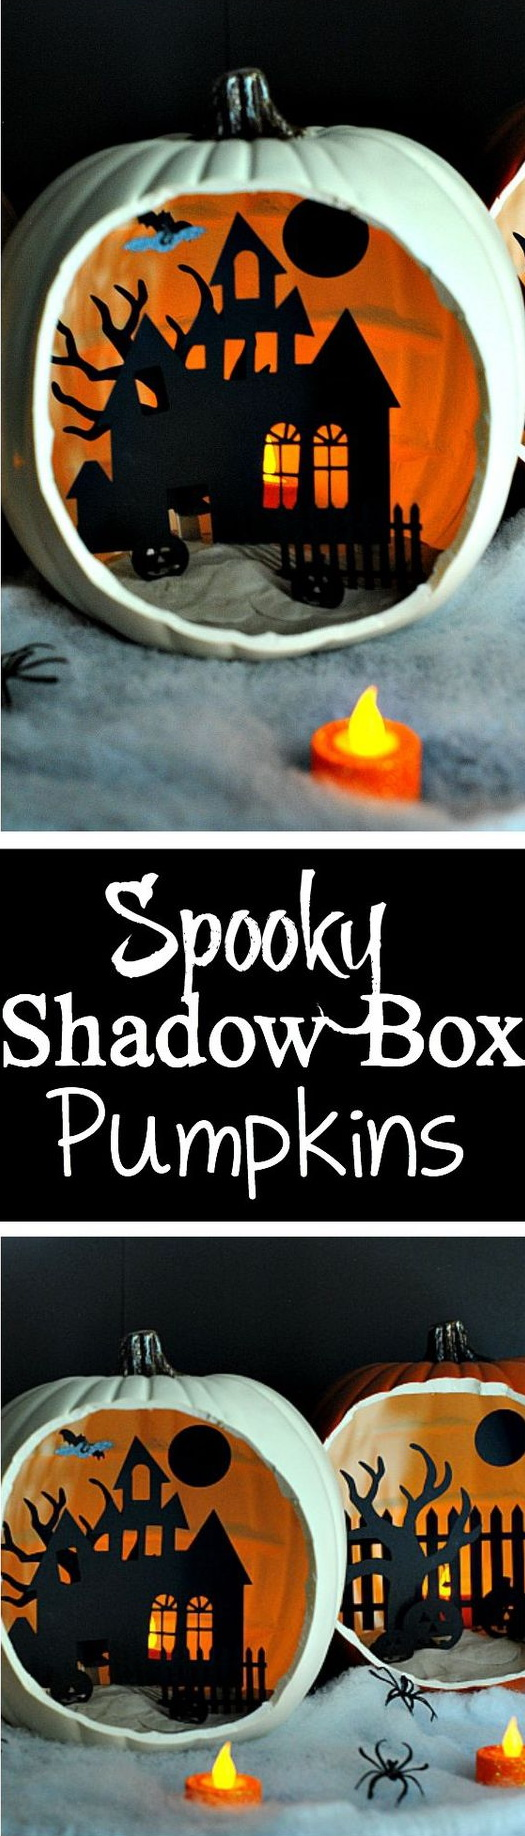 18 dollar store crafts for halloween - 30 Dollar Store DIY Projects for Halloween